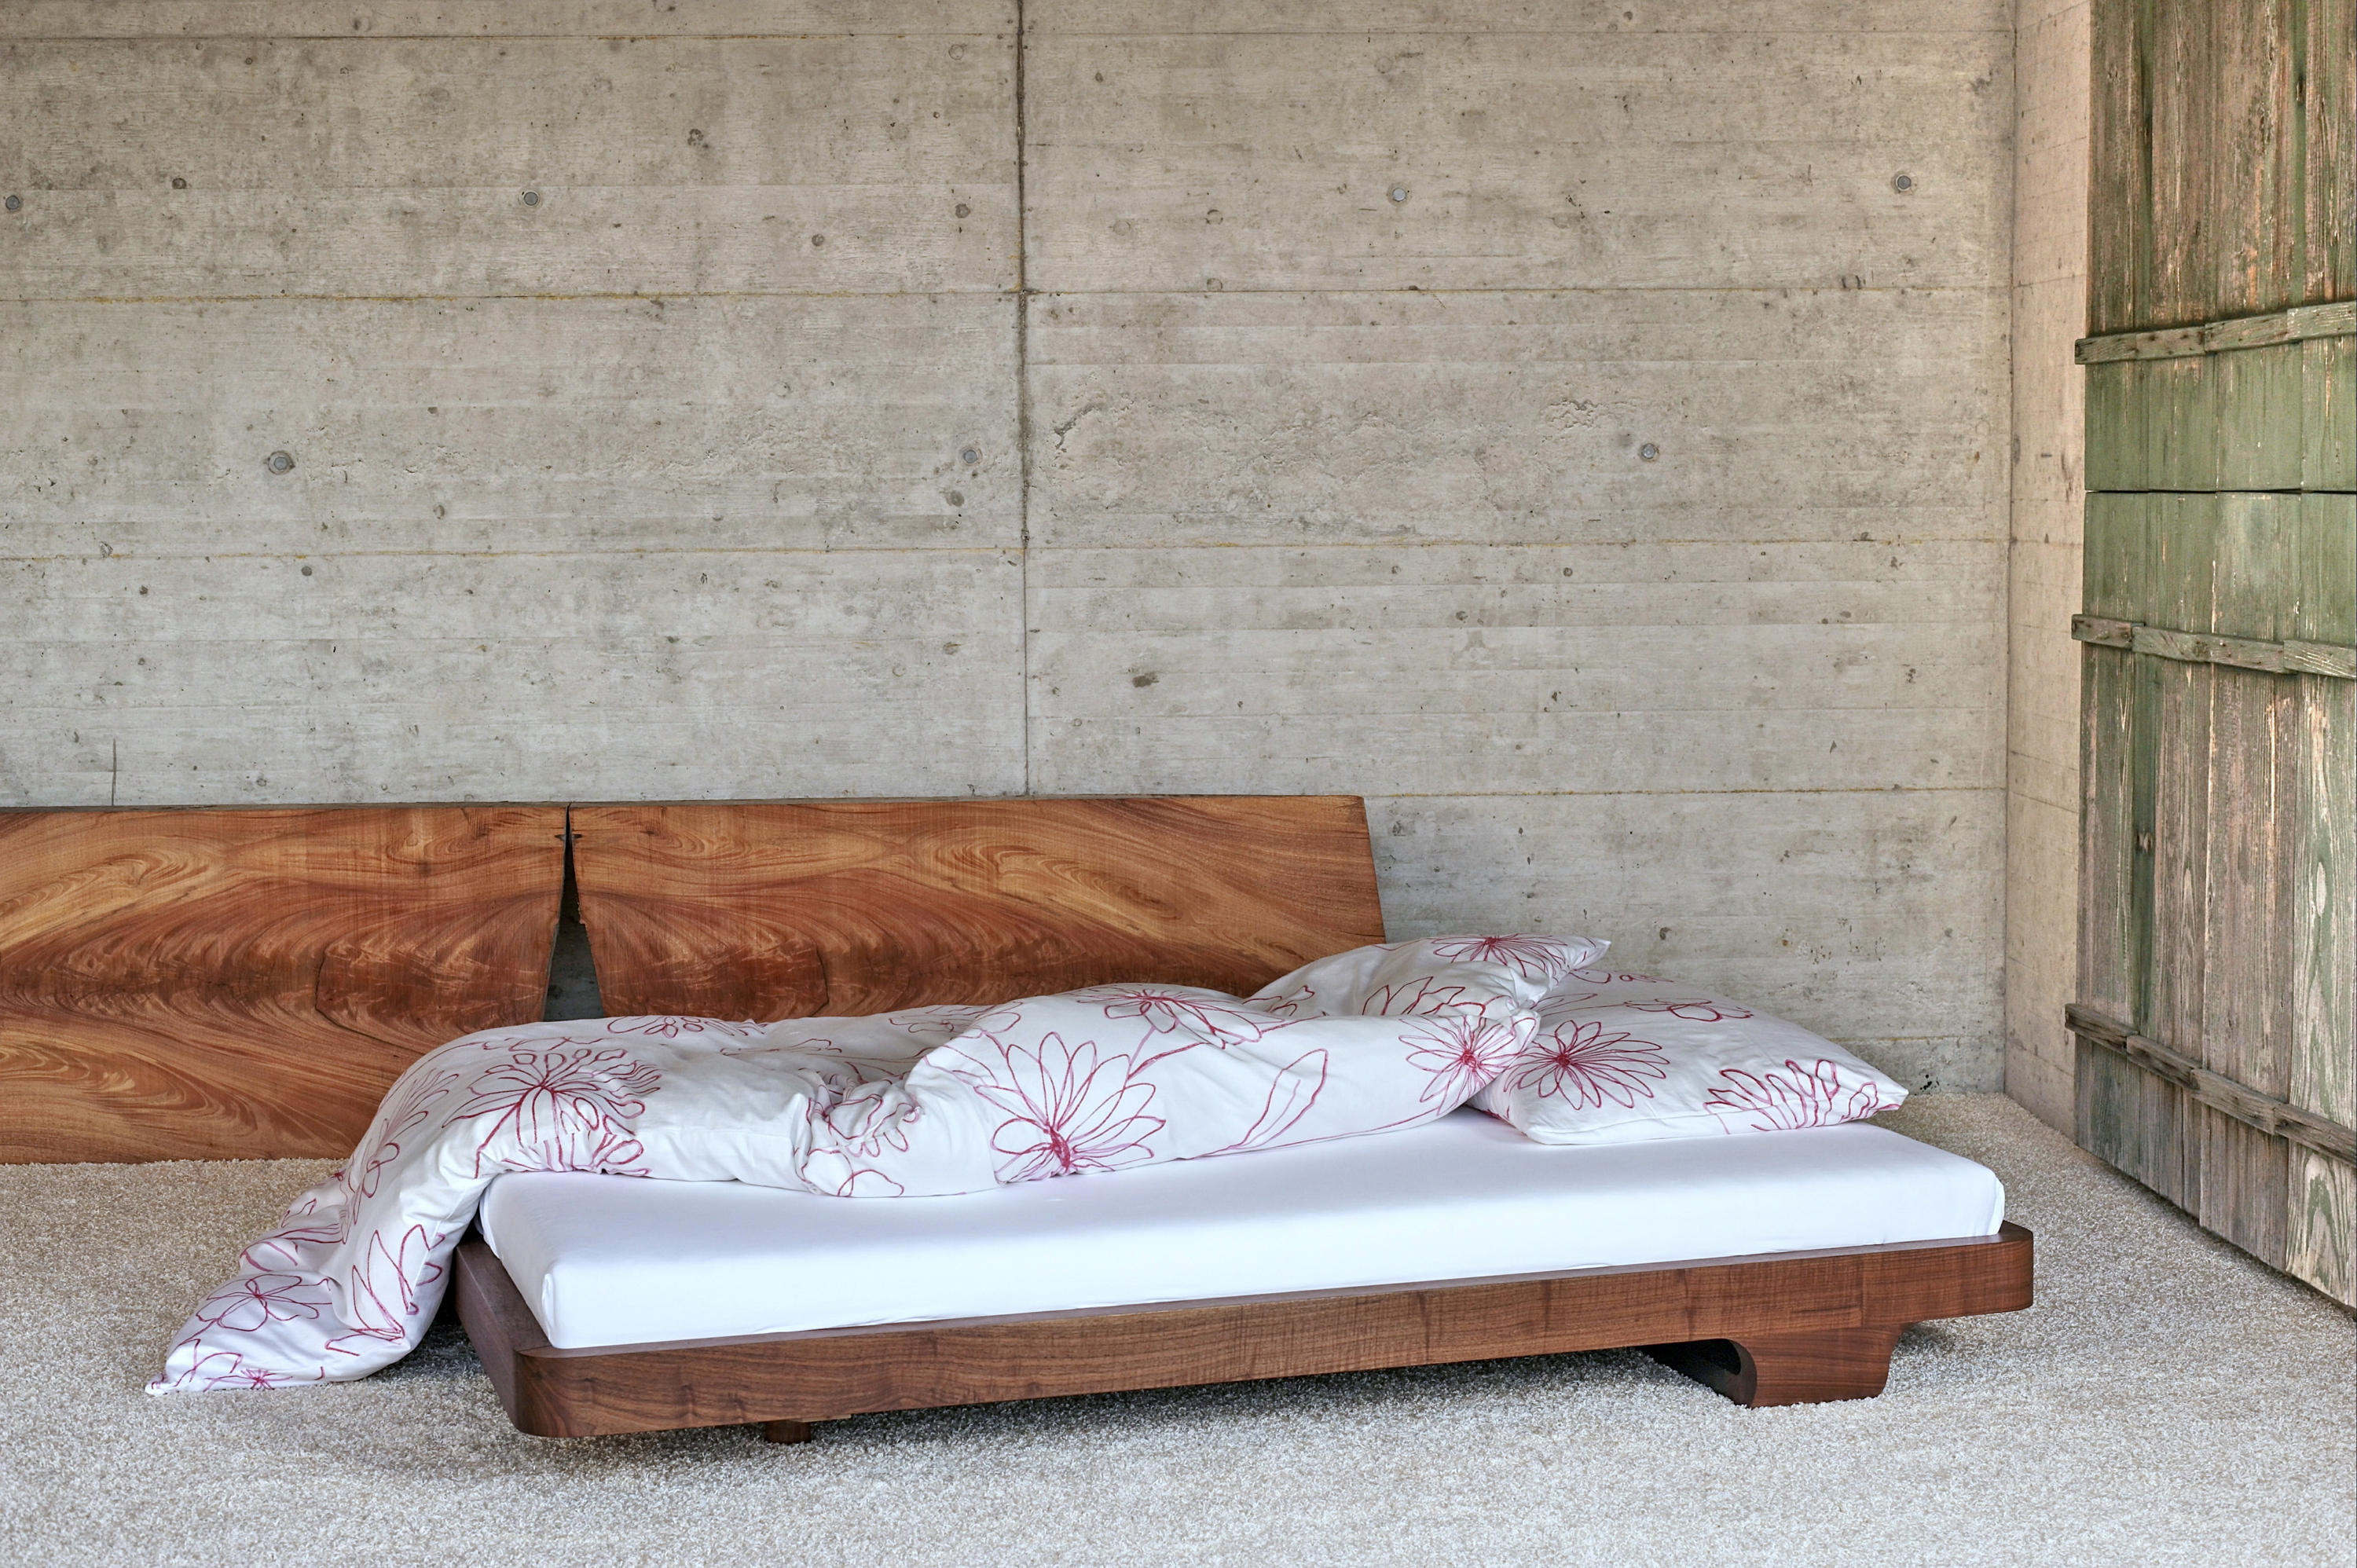 ign. dream. bed. - double beds from ign. design. | architonic - Dream Massivholzbett Ign Design